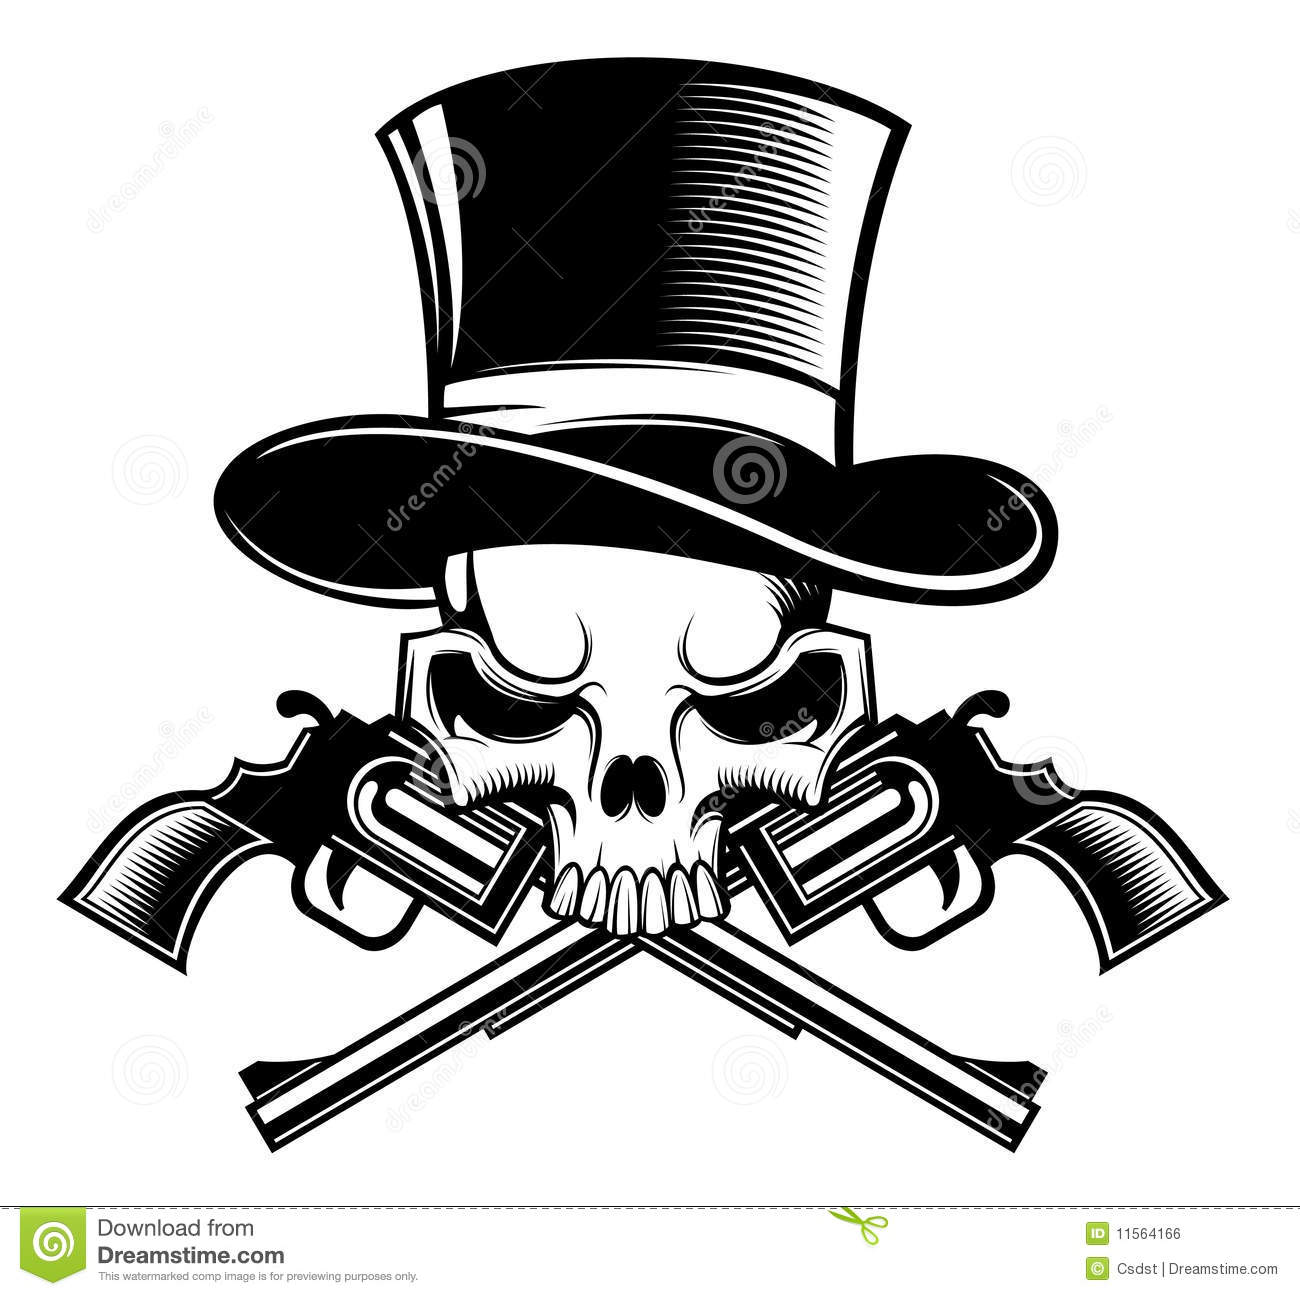 Drawings Easy Skull With Guns: Fashon Cartoons, Illustrations & Vector Stock Images